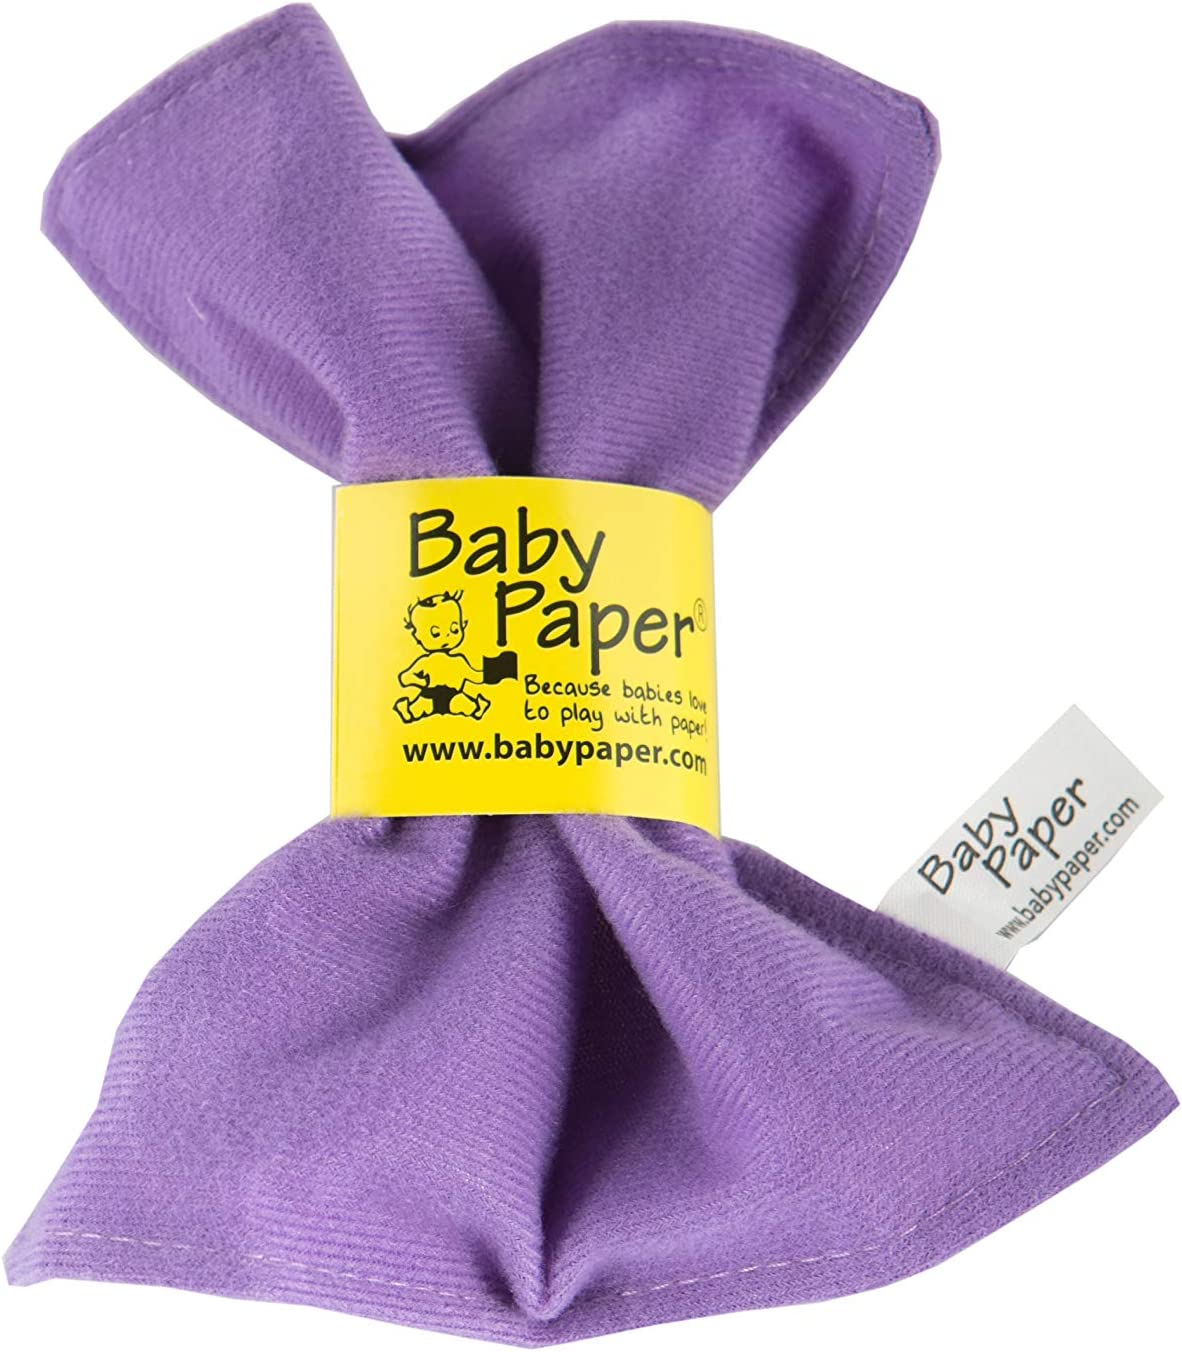 Lilac Washable The for Baby Showers Baby Paper Original Crinkle Teether and Sensory Toy for Babies and Infants Non-Toxic